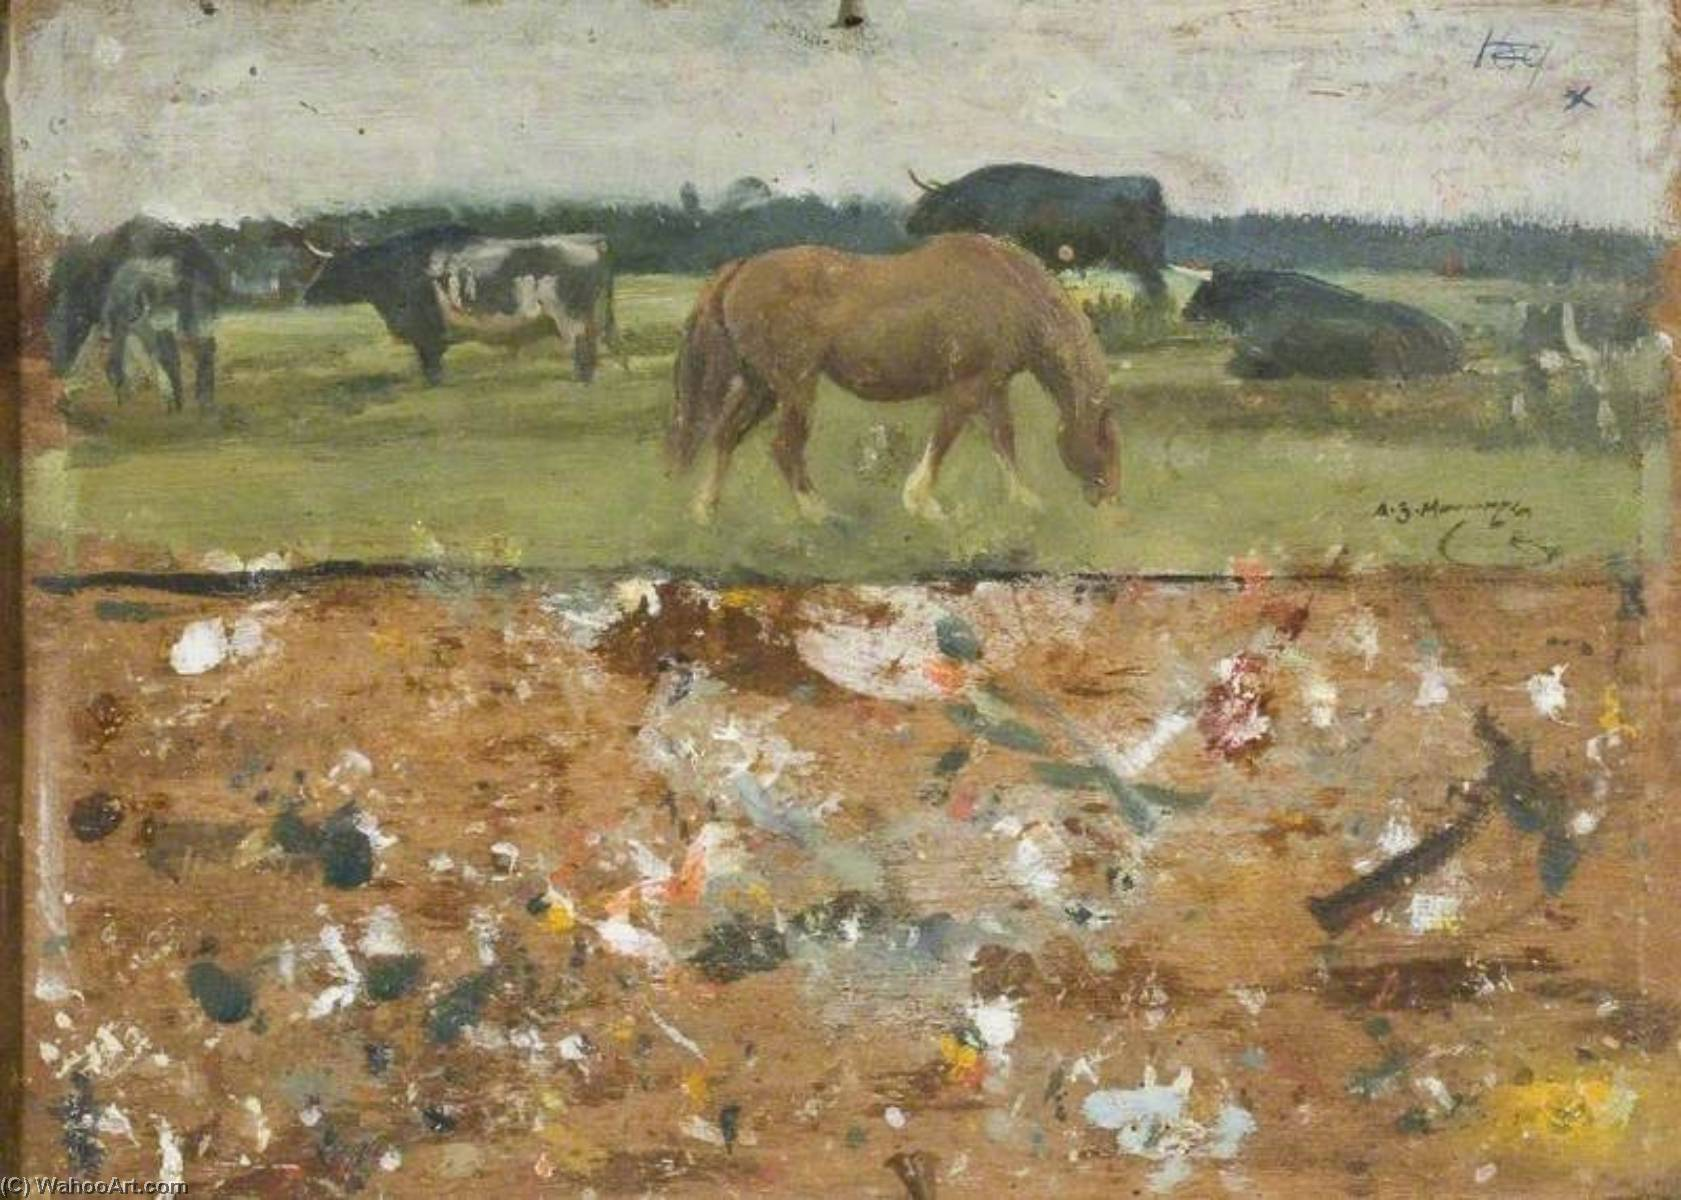 étude des a cheval et bullocks Pâturage ( verso ), Huile de Alfred James Munnings (1878-1959, United Kingdom)